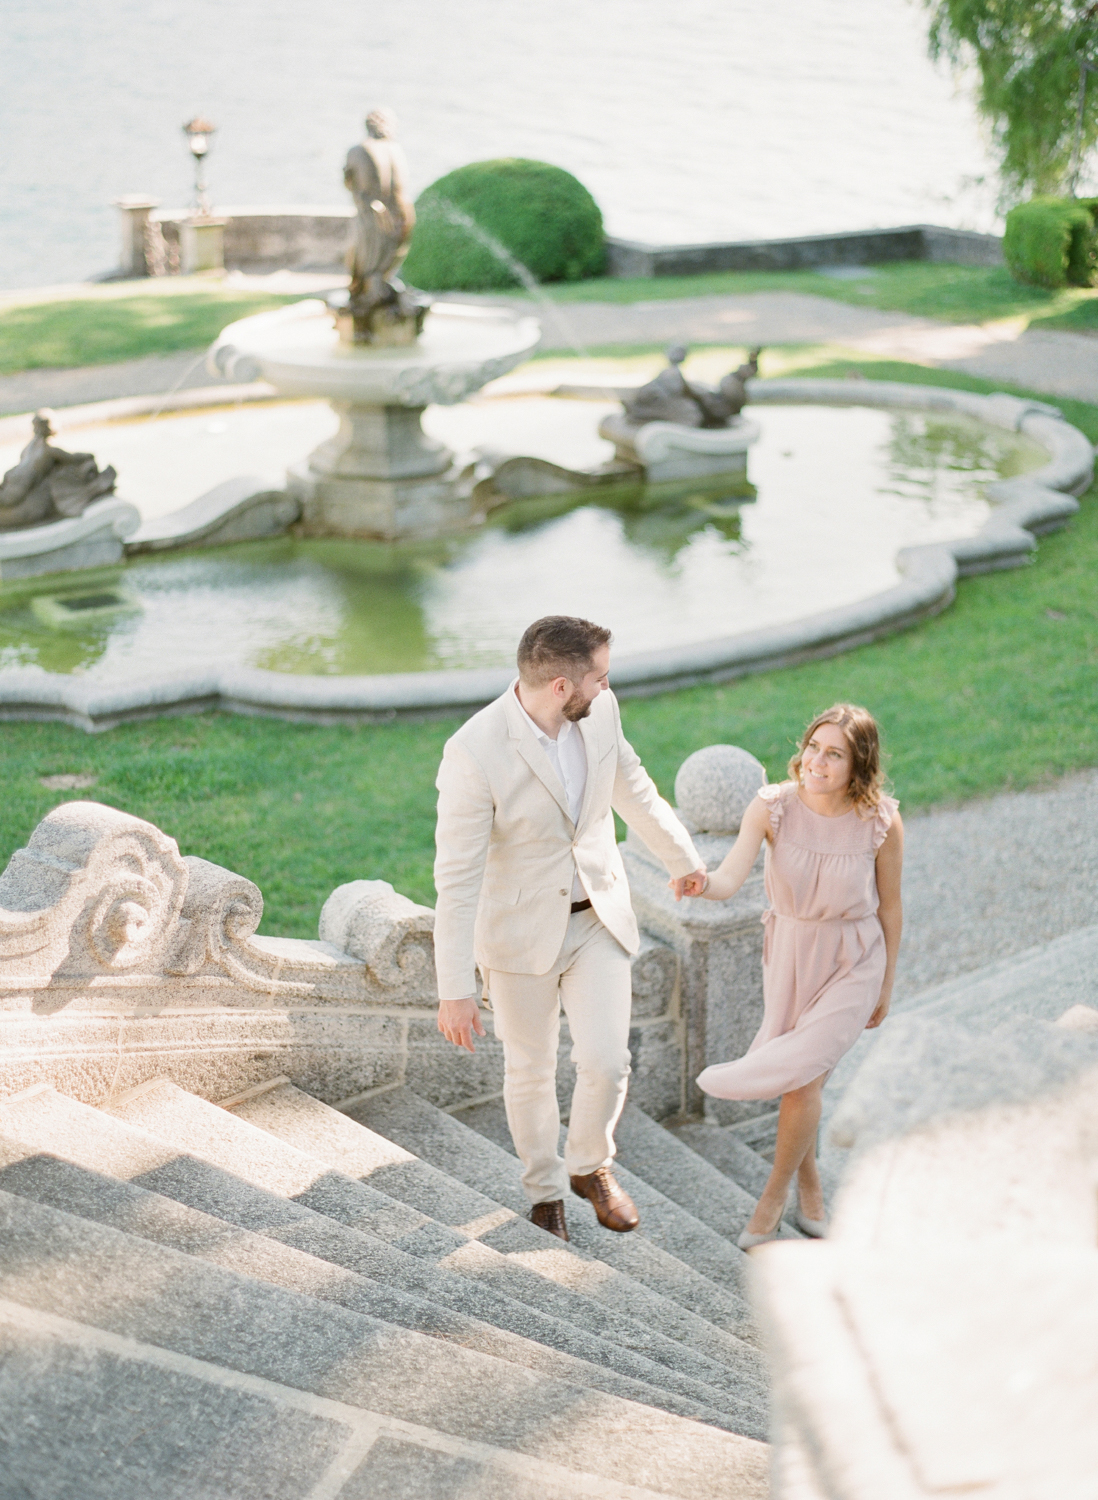 Lake_Como_wedding_photographer_nikol_bodnarova_lake_como_film_wedding_photographer_06.JPG